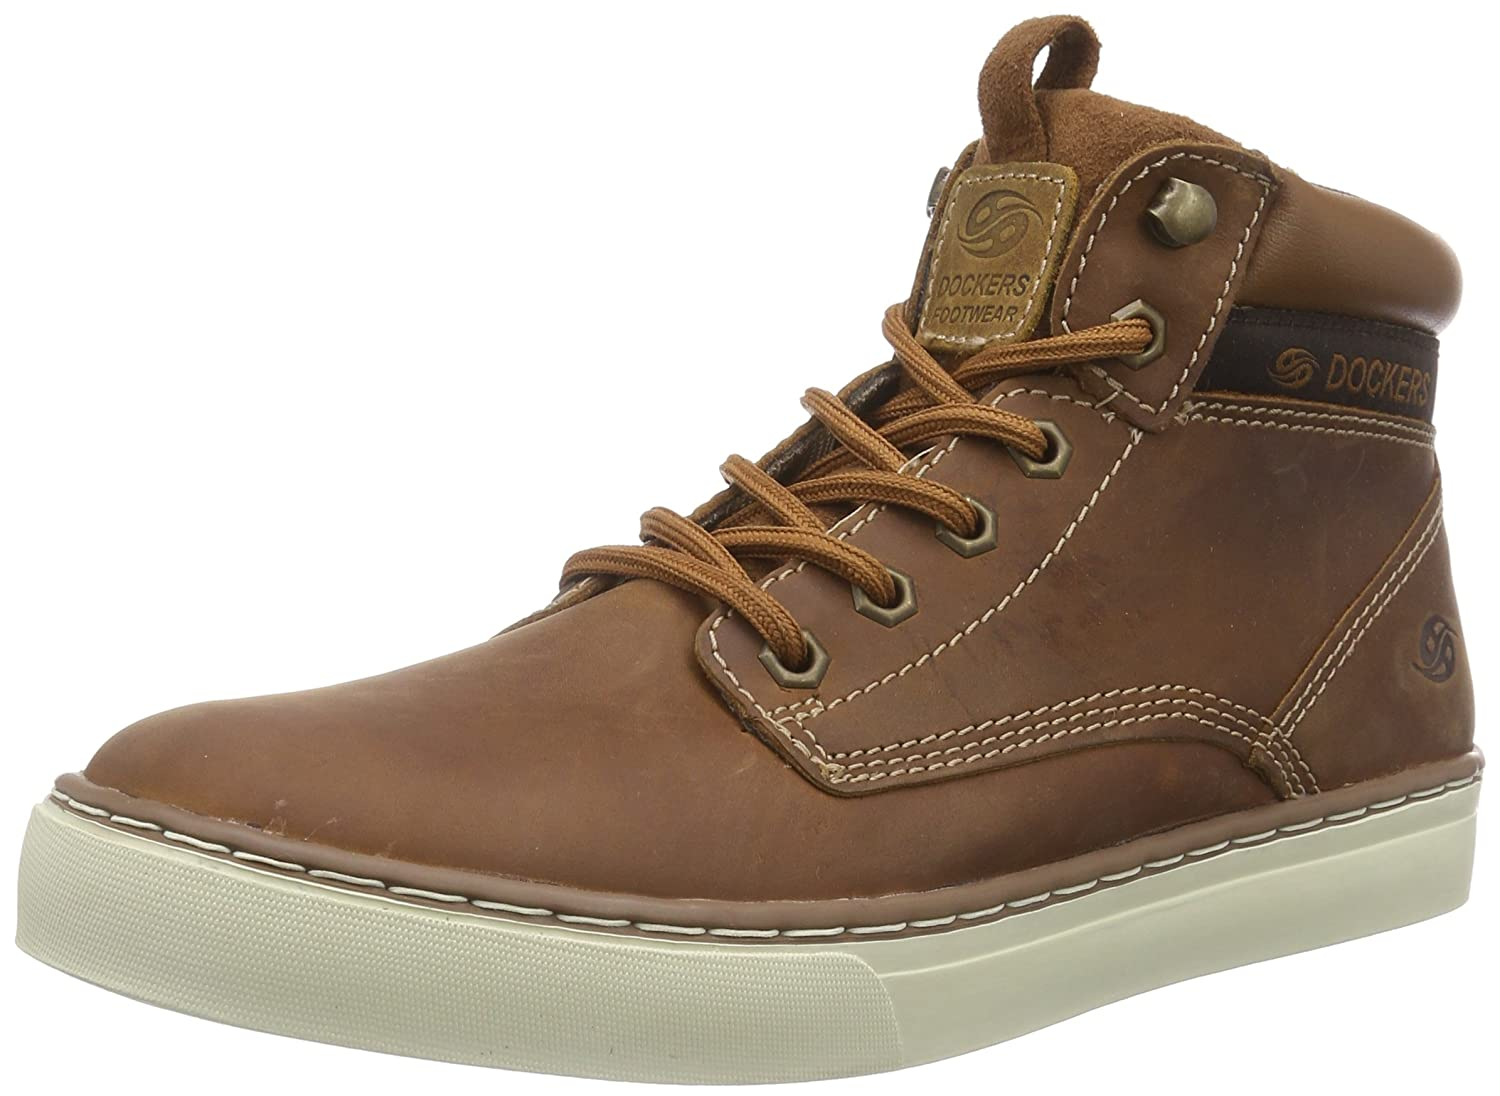 33ec010-400420, Mens Hi-Top Sneakers Dockers